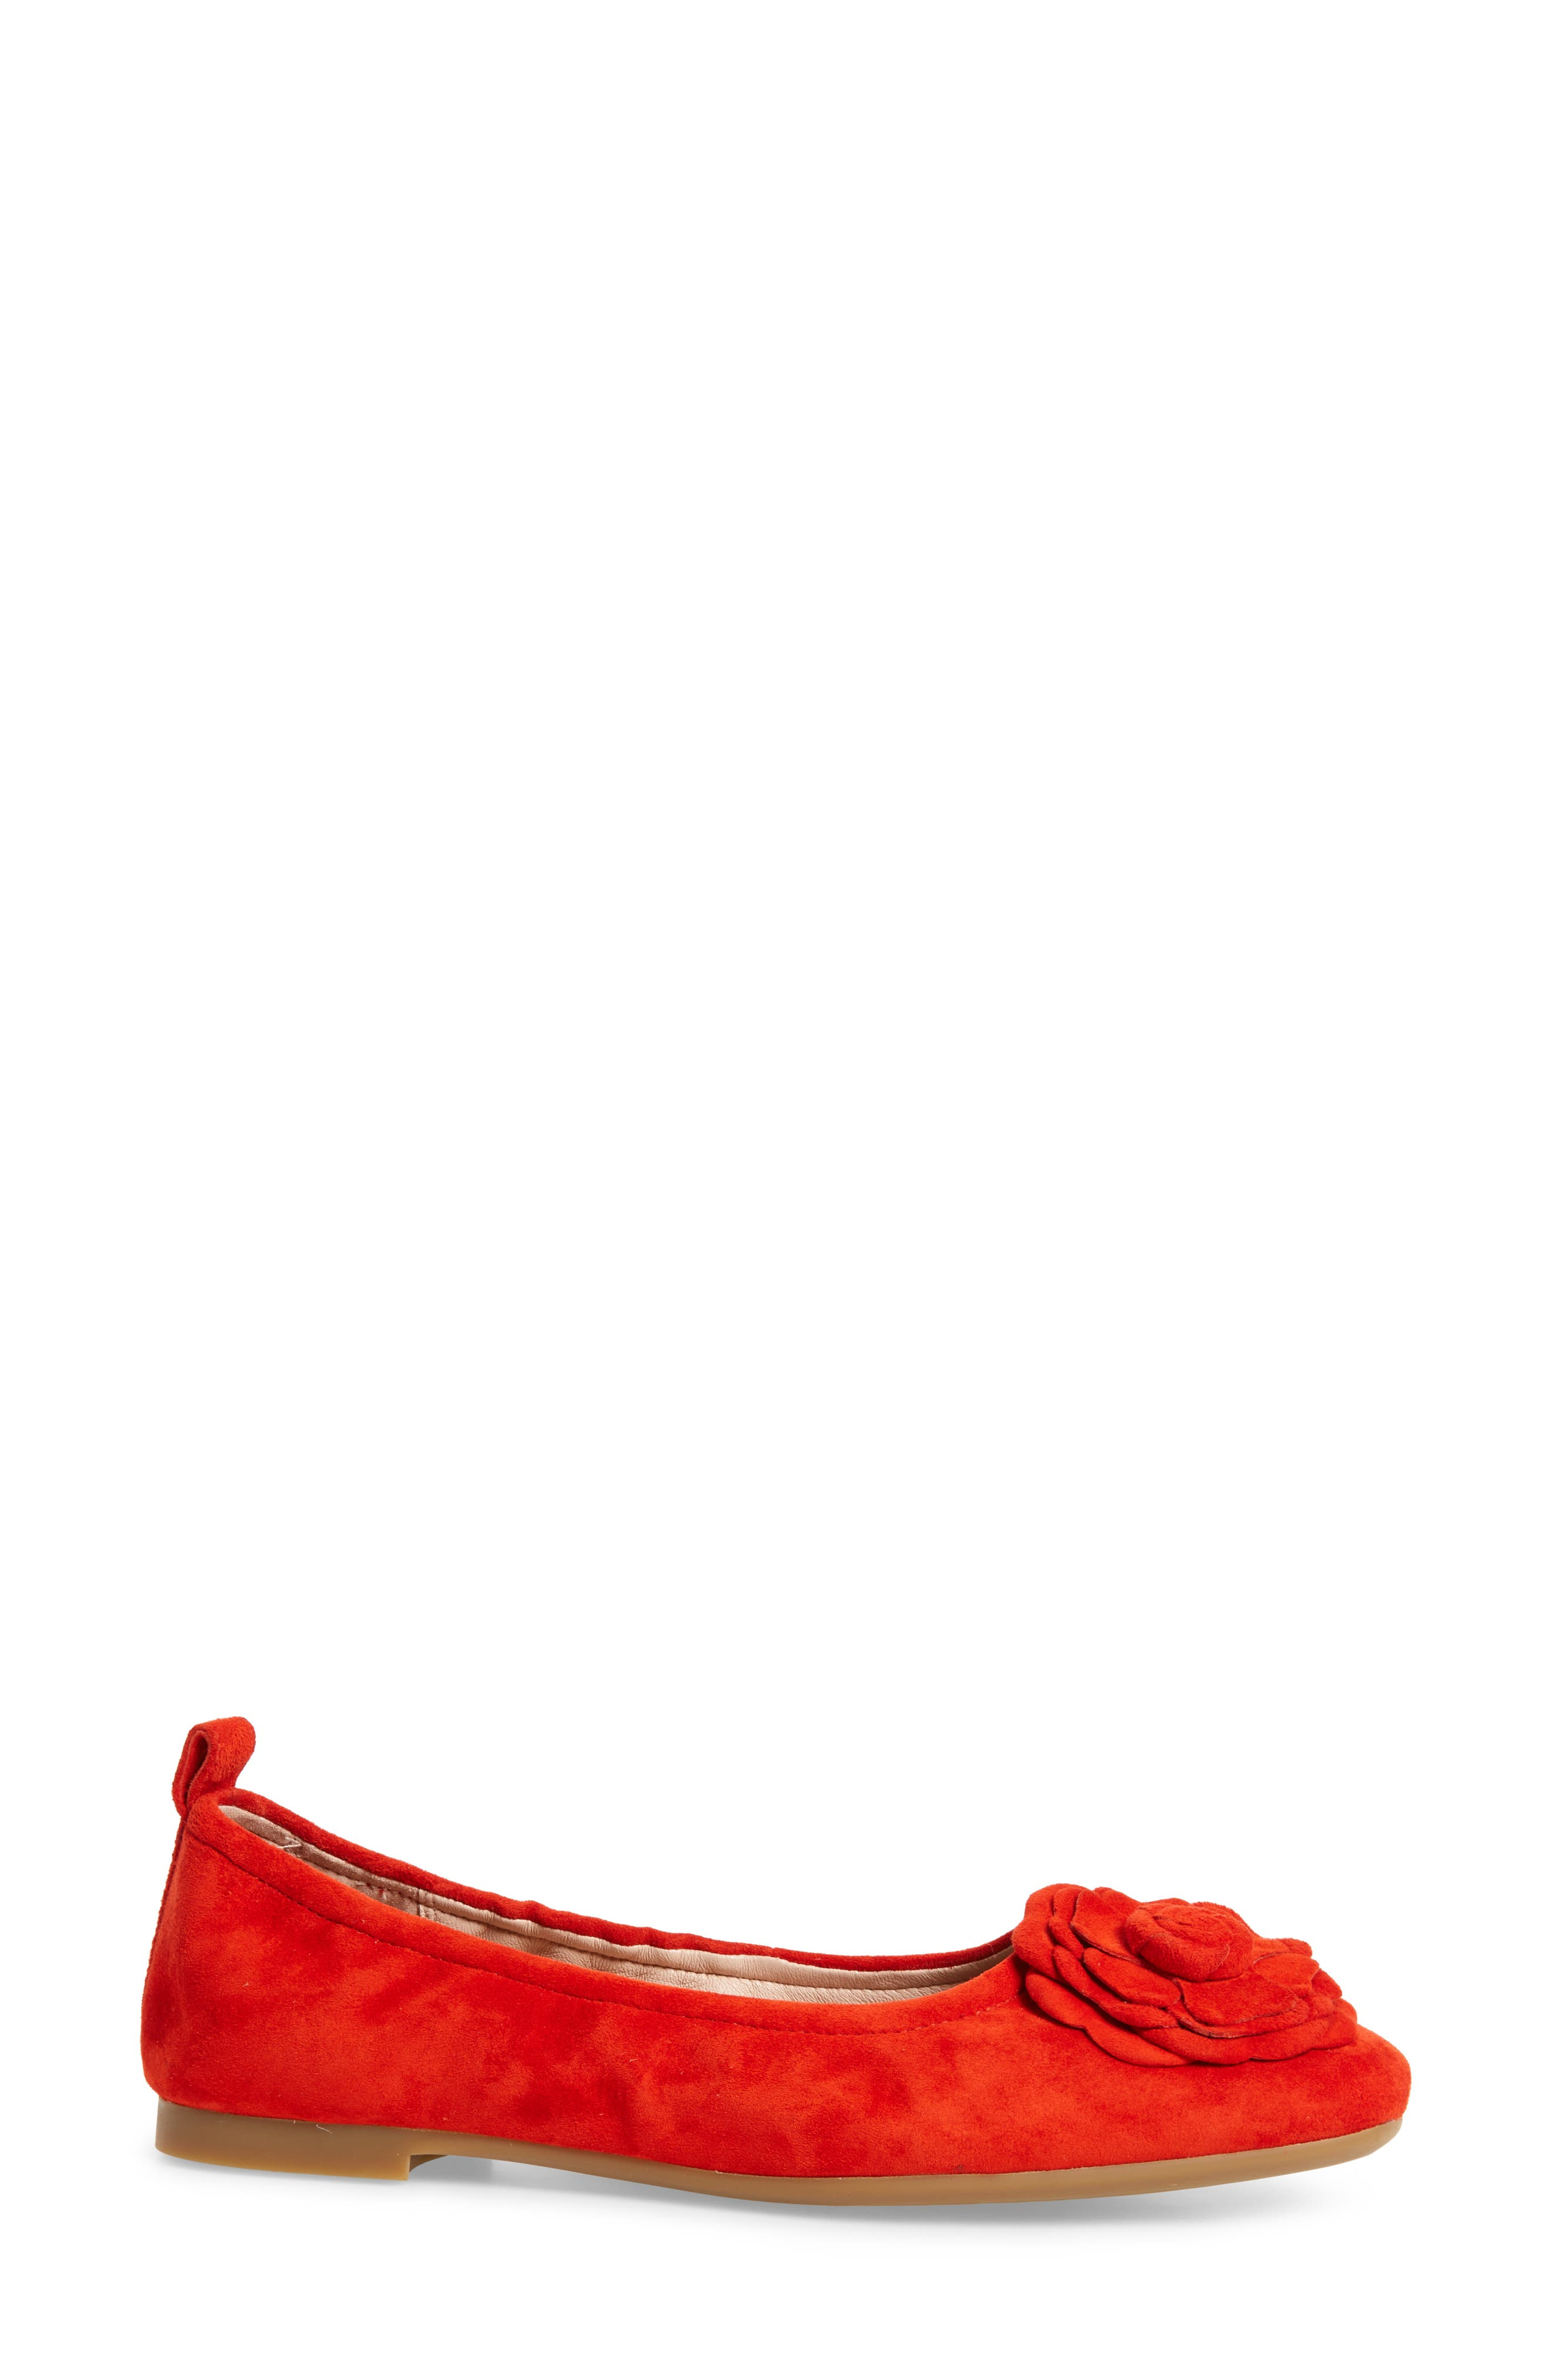 Rosalyn Ballet Flat,                             Alternate thumbnail 5, color,                             Spicy Suede